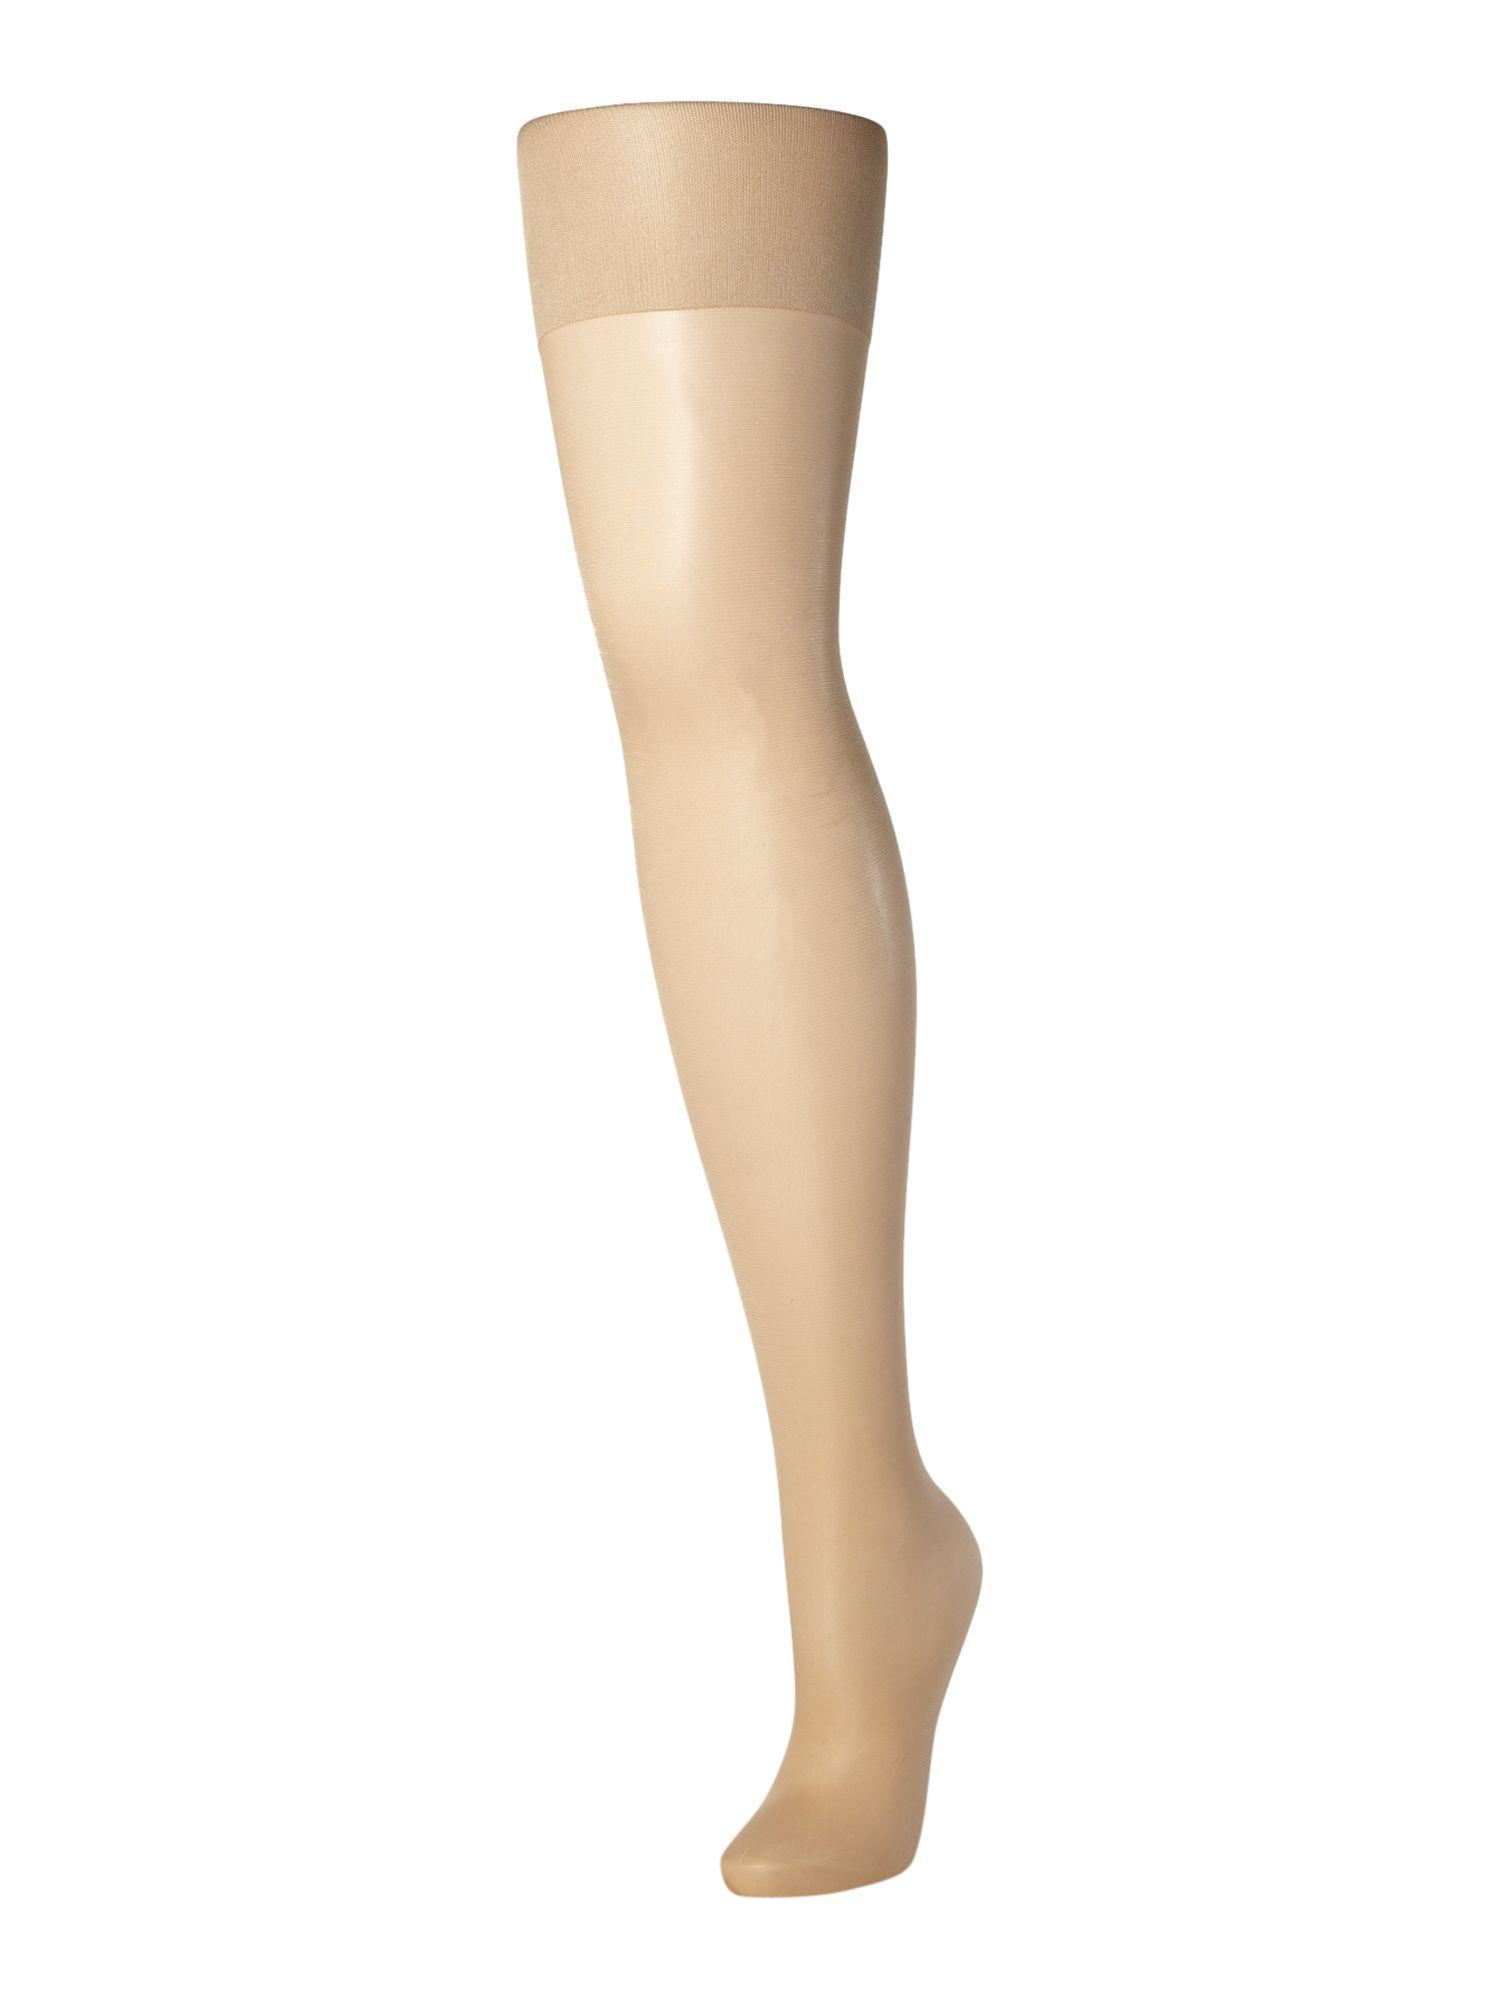 8623a4aef Aristoc Bodytoner Hourglass 10 Denier Tights in Natural - Save 25 ...